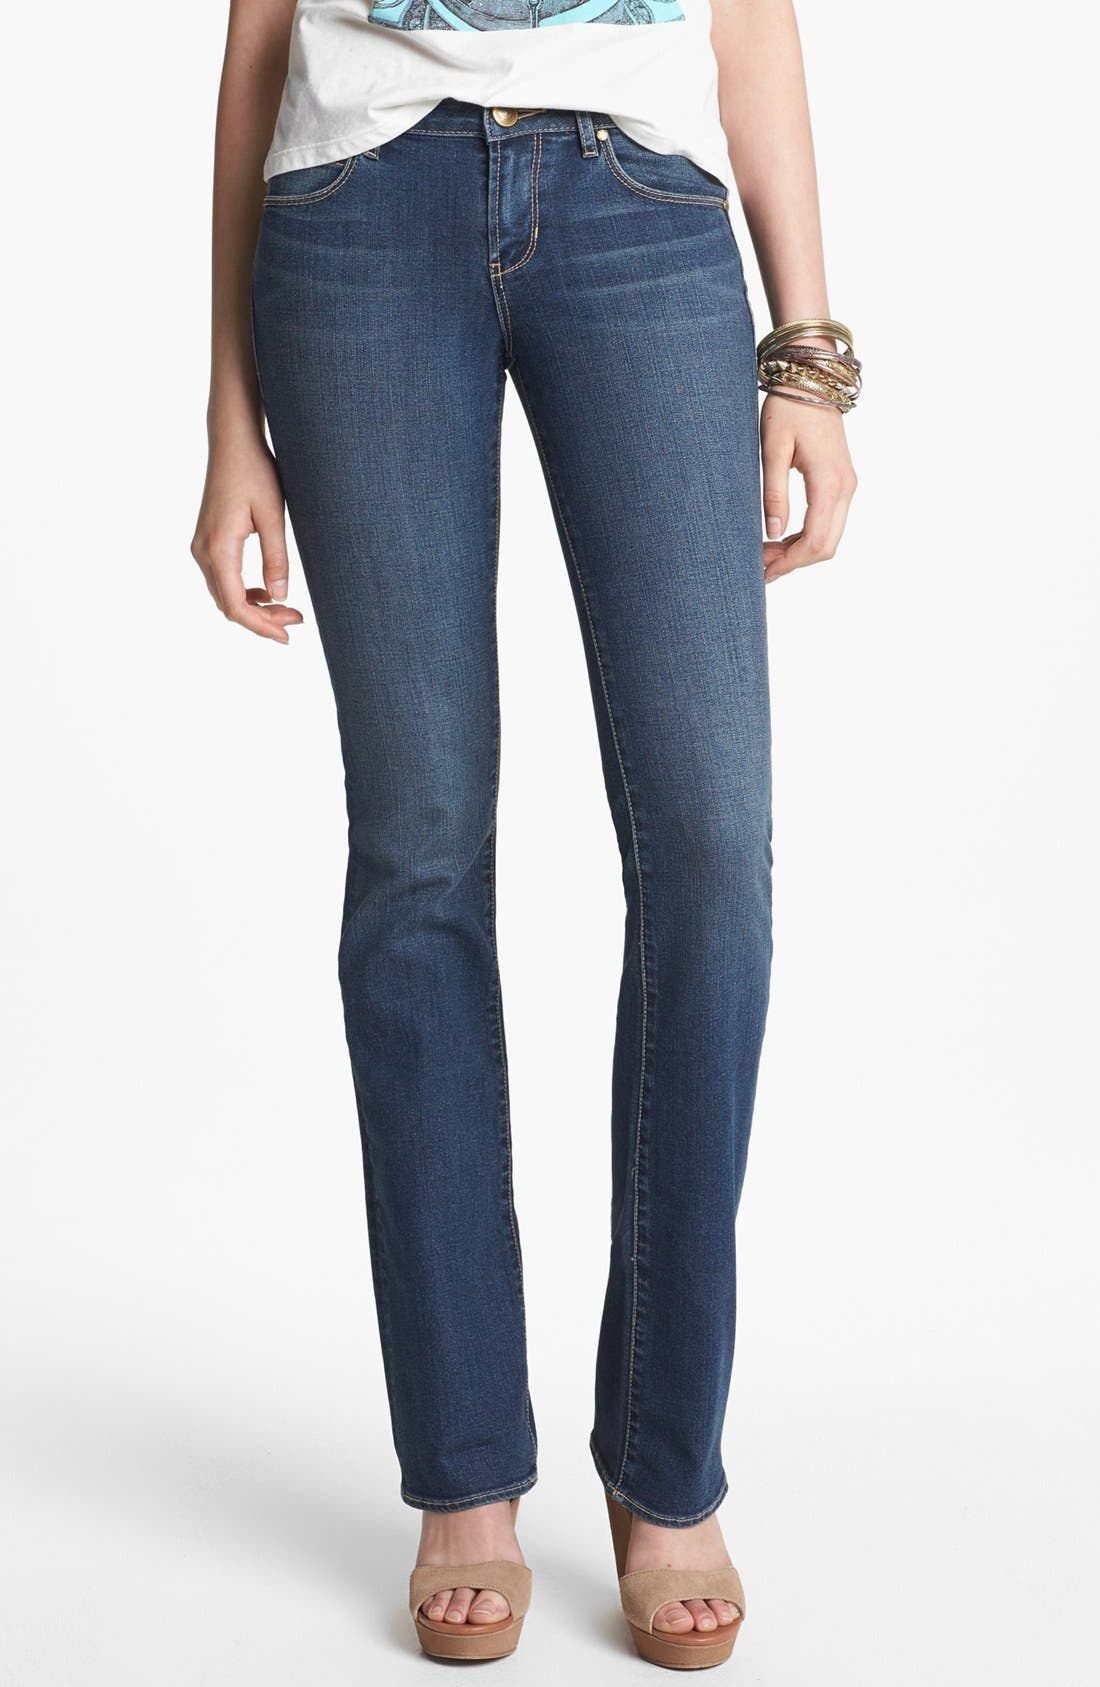 Alternate Image 1 Selected - Articles of Society 'Kendra' Baby Bootcut Jeans (Medium) (Juniors)